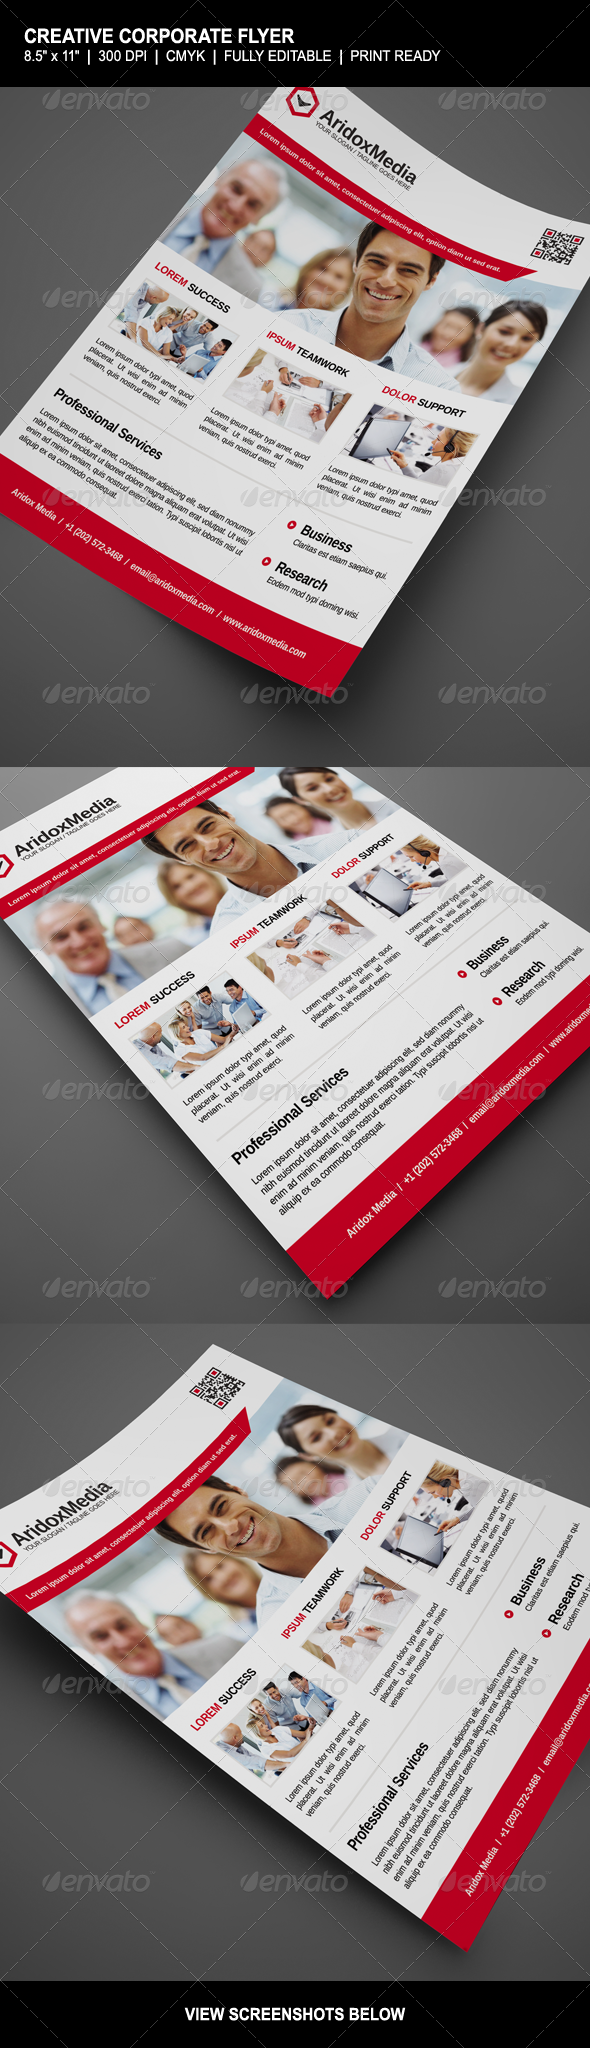 GraphicRiver Creative Corporate Flyer 4639832